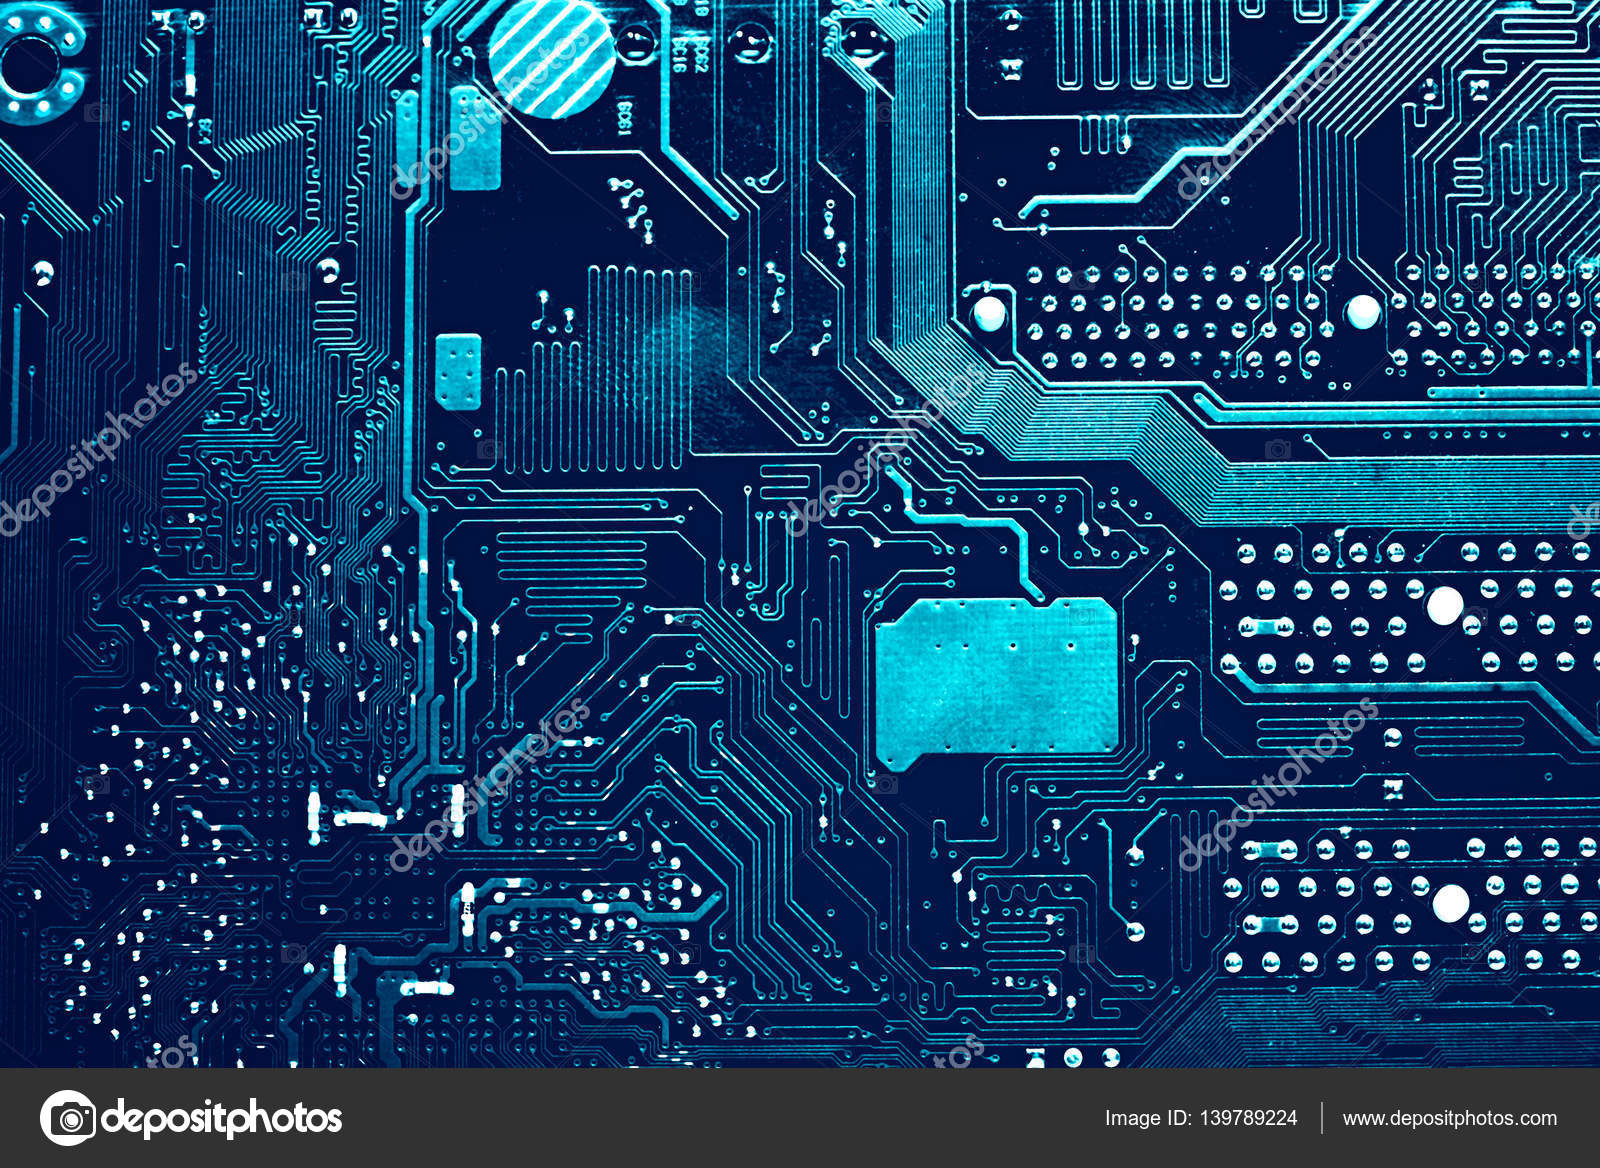 Electronic Computer Hardware Technology Motherboard Digital Chip Tech Science Background Integrated Communication Processor